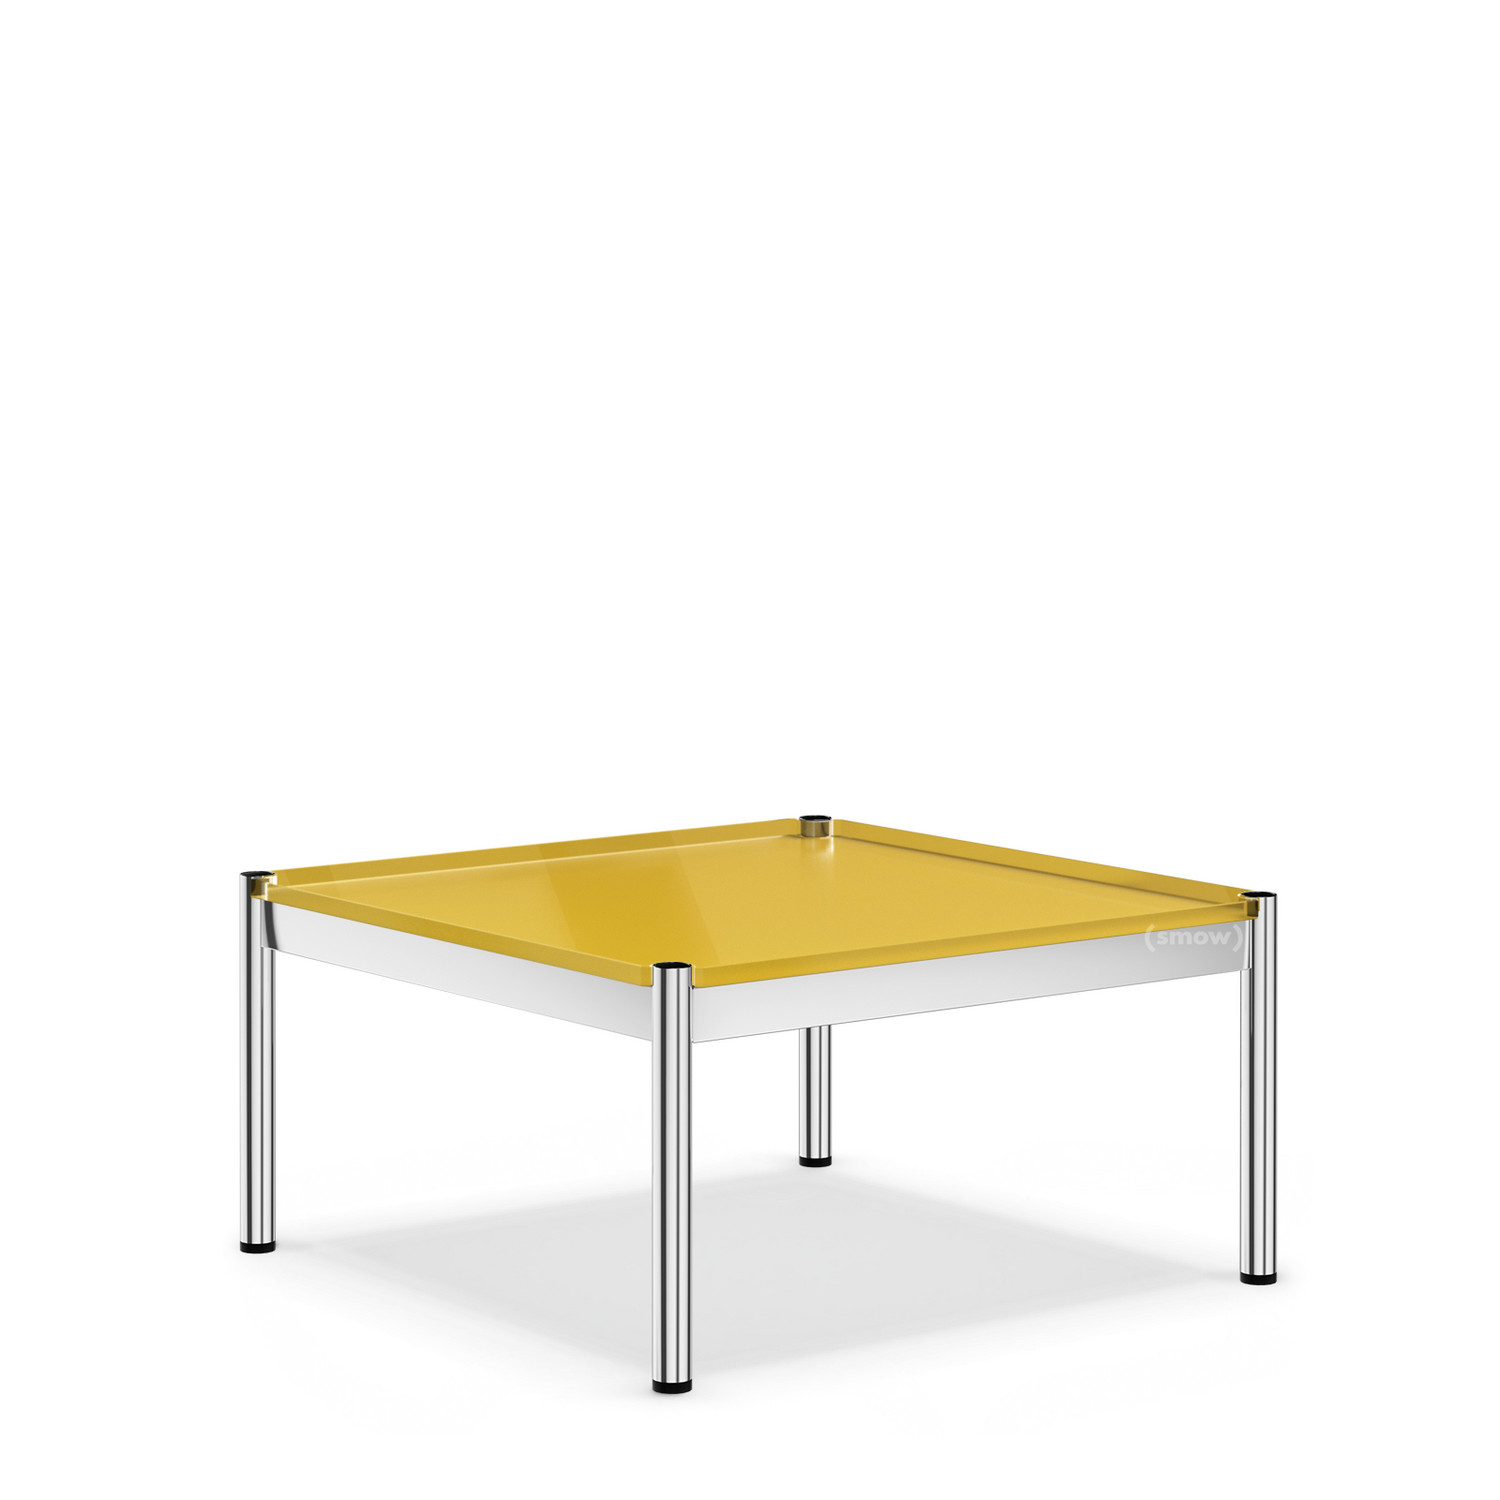 Usm Couchtisch Usm Haller Coffee Table 75 X 75 Cm Glass Golden Yellow Ral 1004